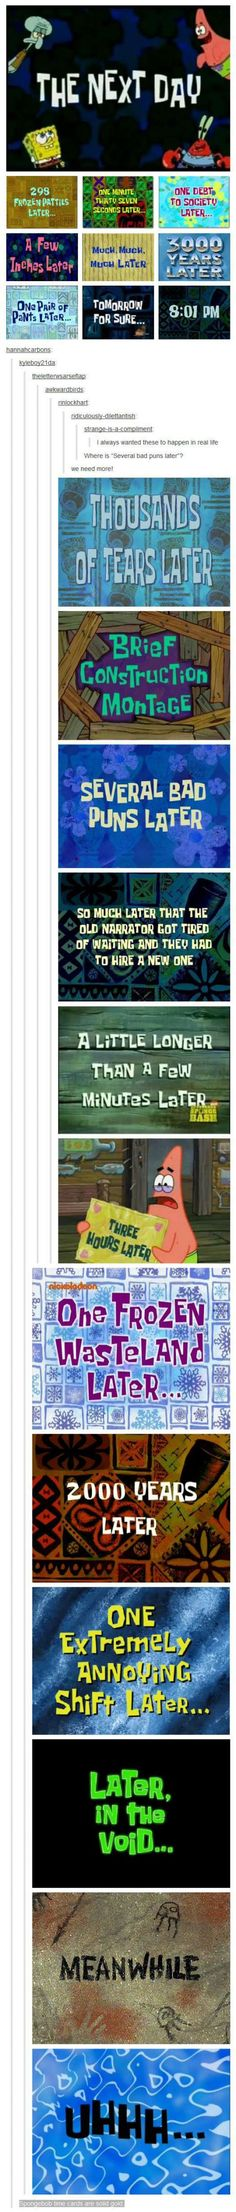 """Spongebob time cards are the best. But! The all important """"One Eternity Later"""" card is missing!"""